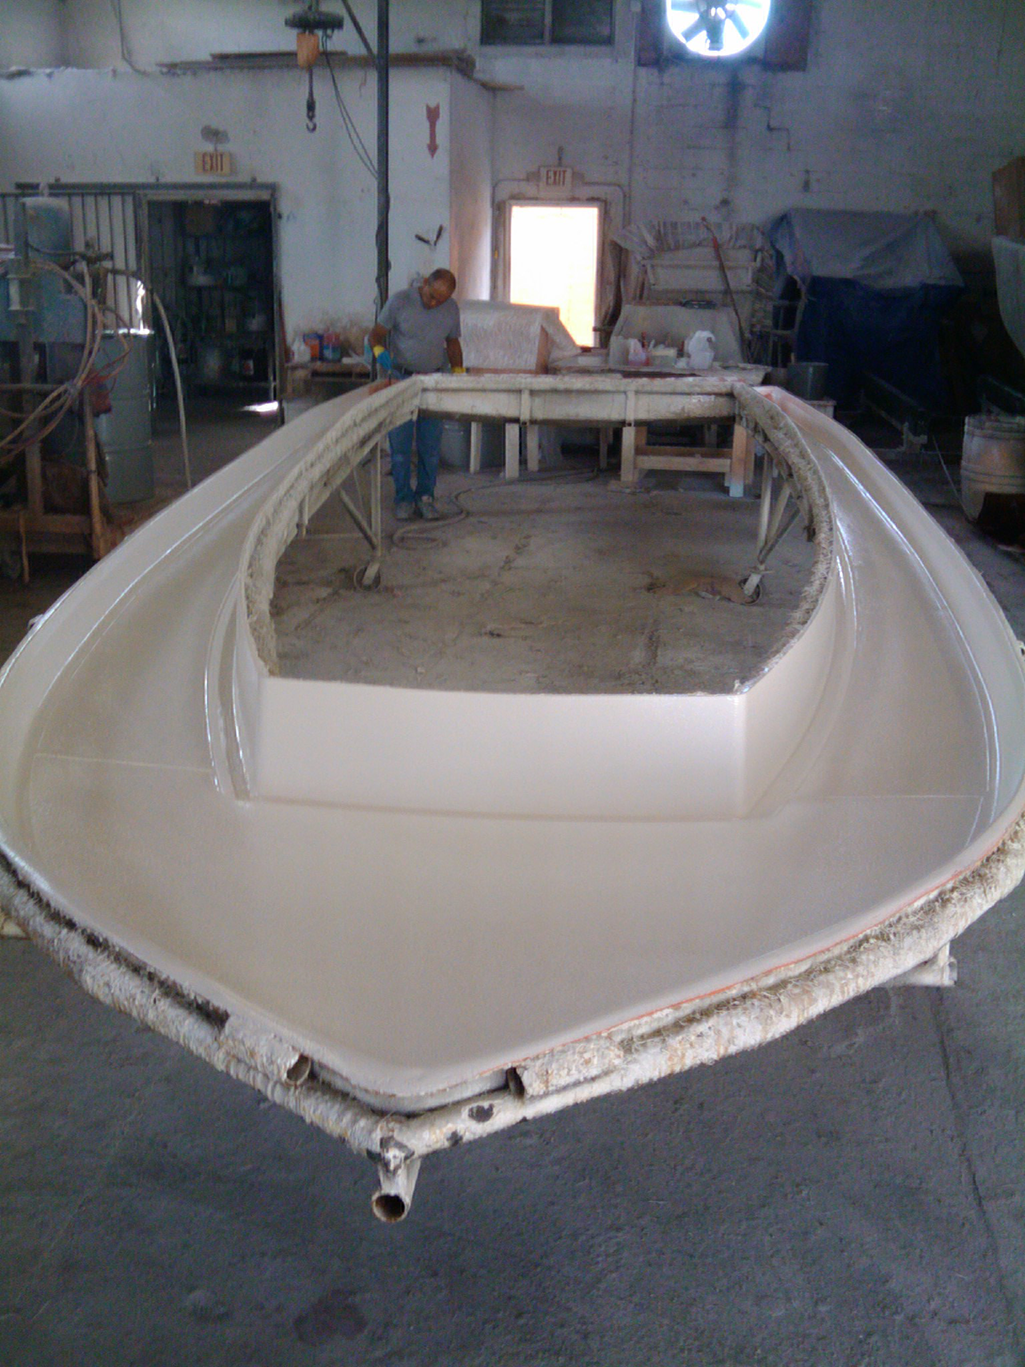 Here is the cap ready to be placed onto the boat.